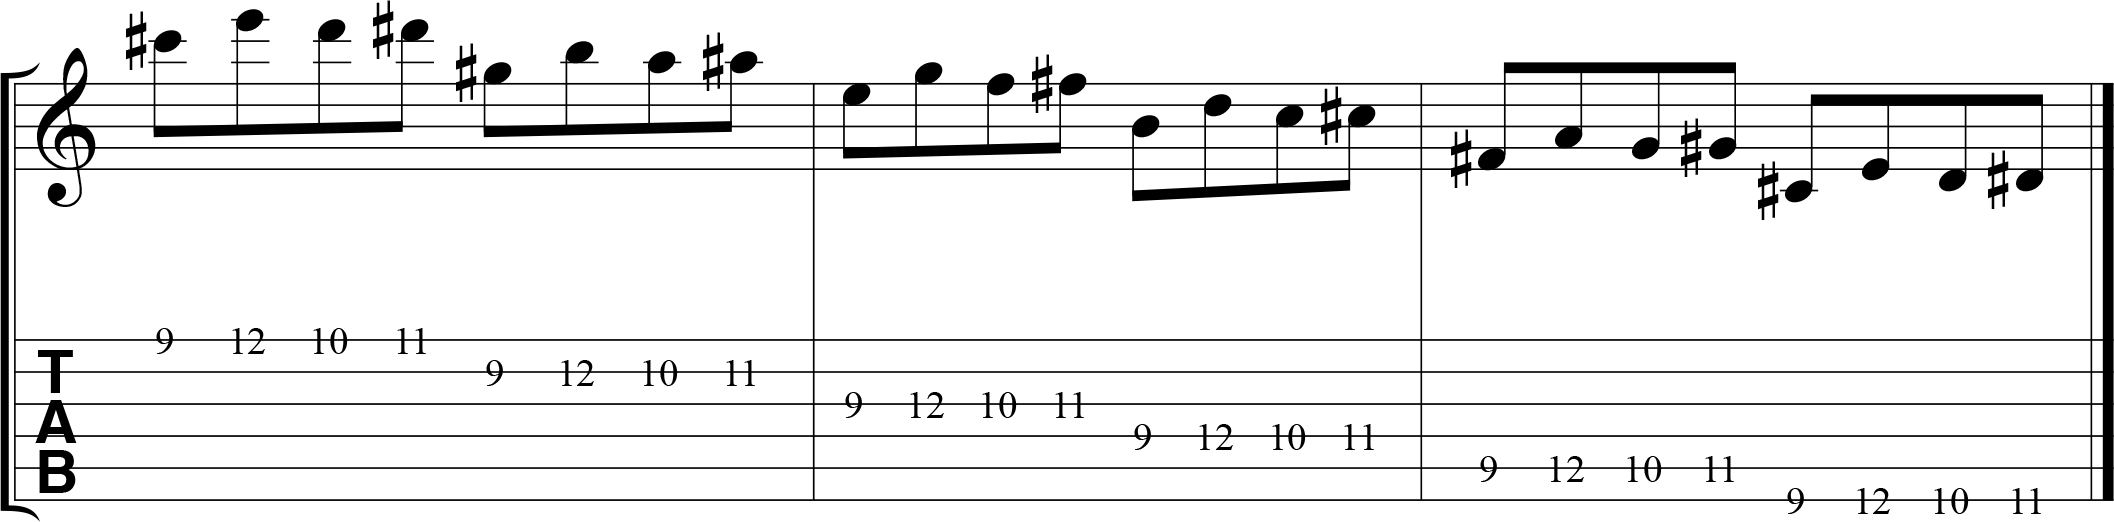 Chromatic alternate picking exercise for guitar, 1423, descending.